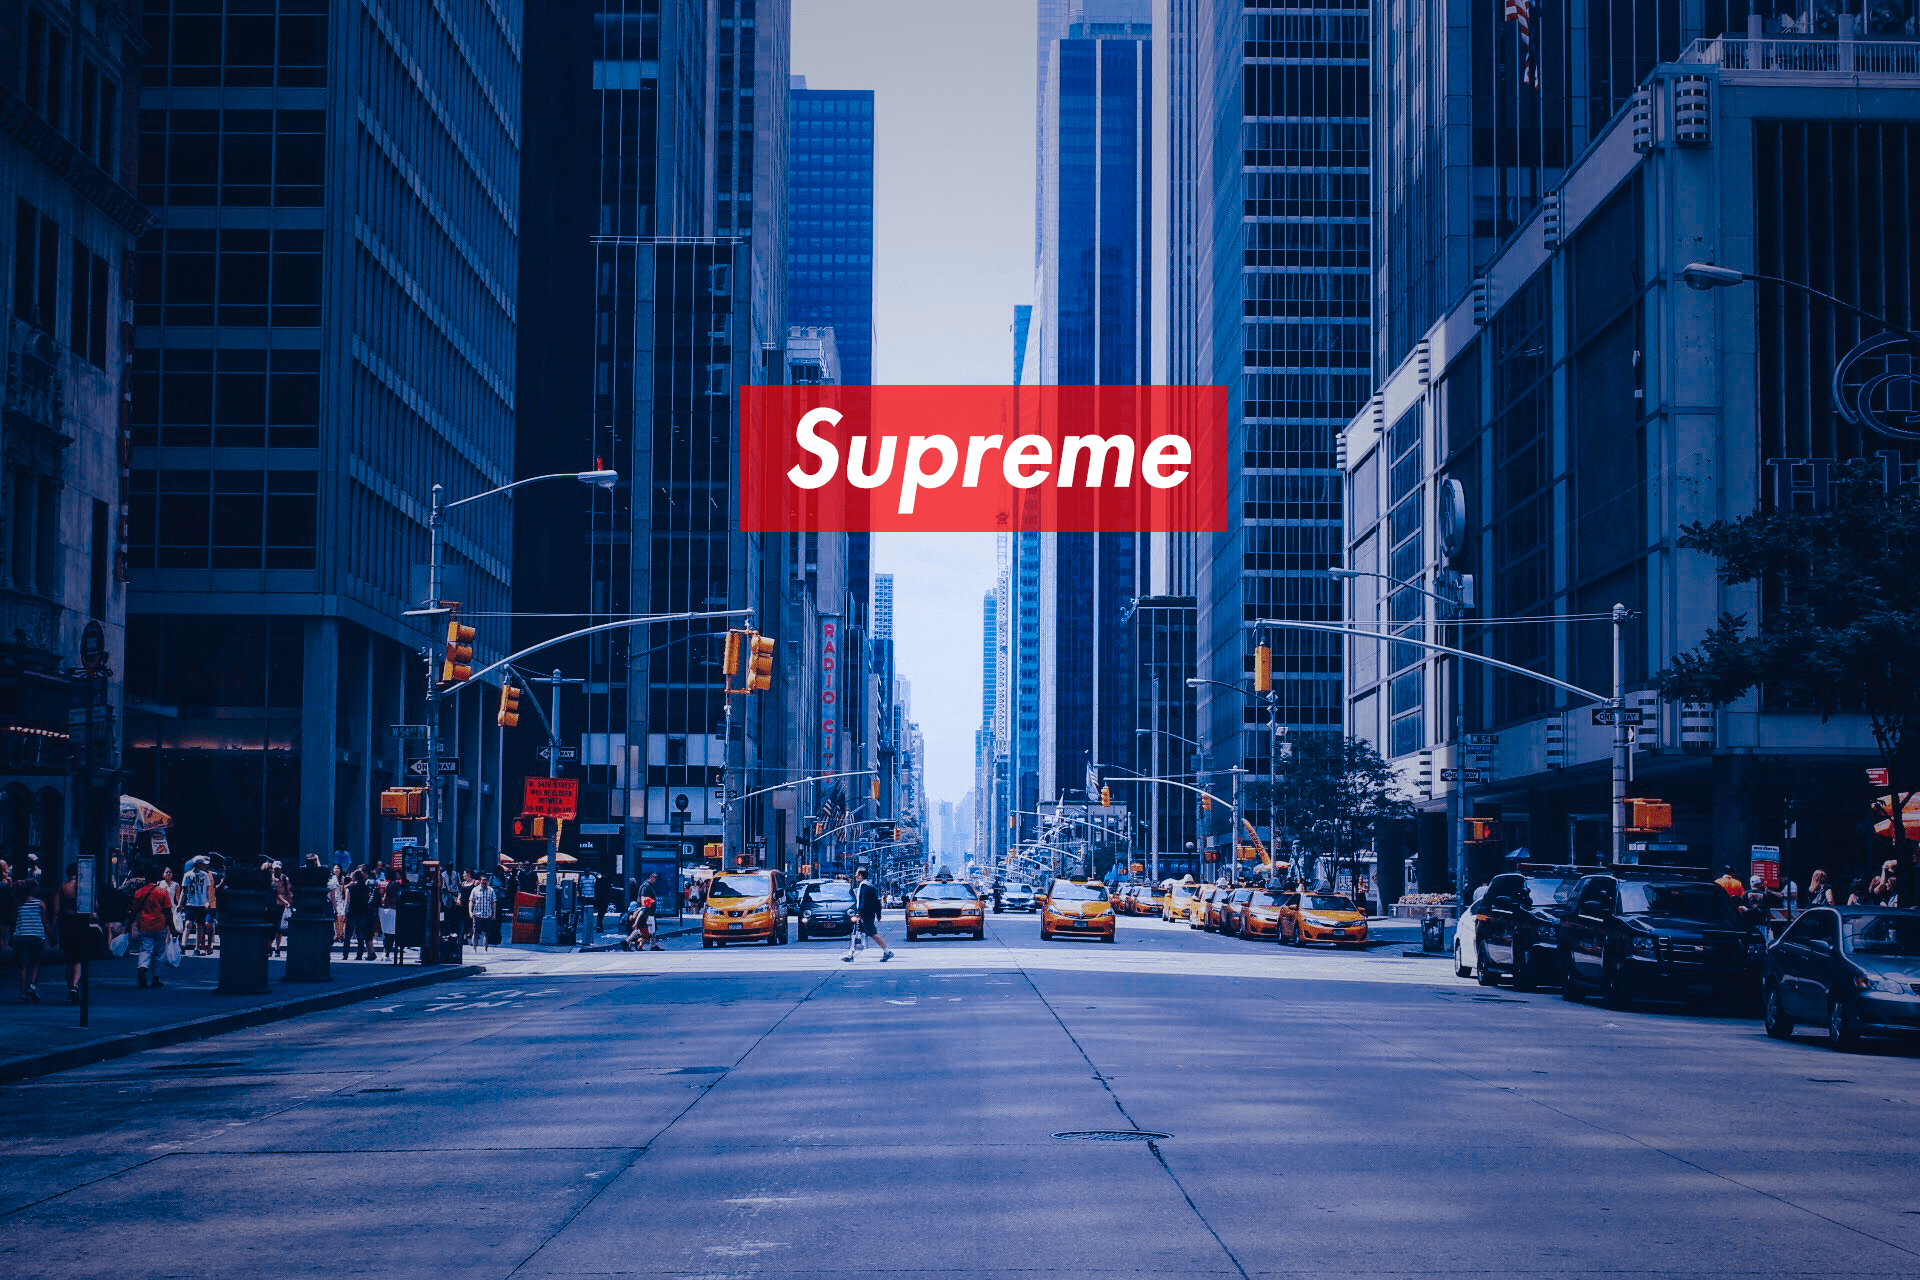 70 Supreme Wallpapers In 4k Allhdwallpapers Macbook Wallpaper Supreme Wallpaper Laptop Wallpaper Desktop Wallpapers